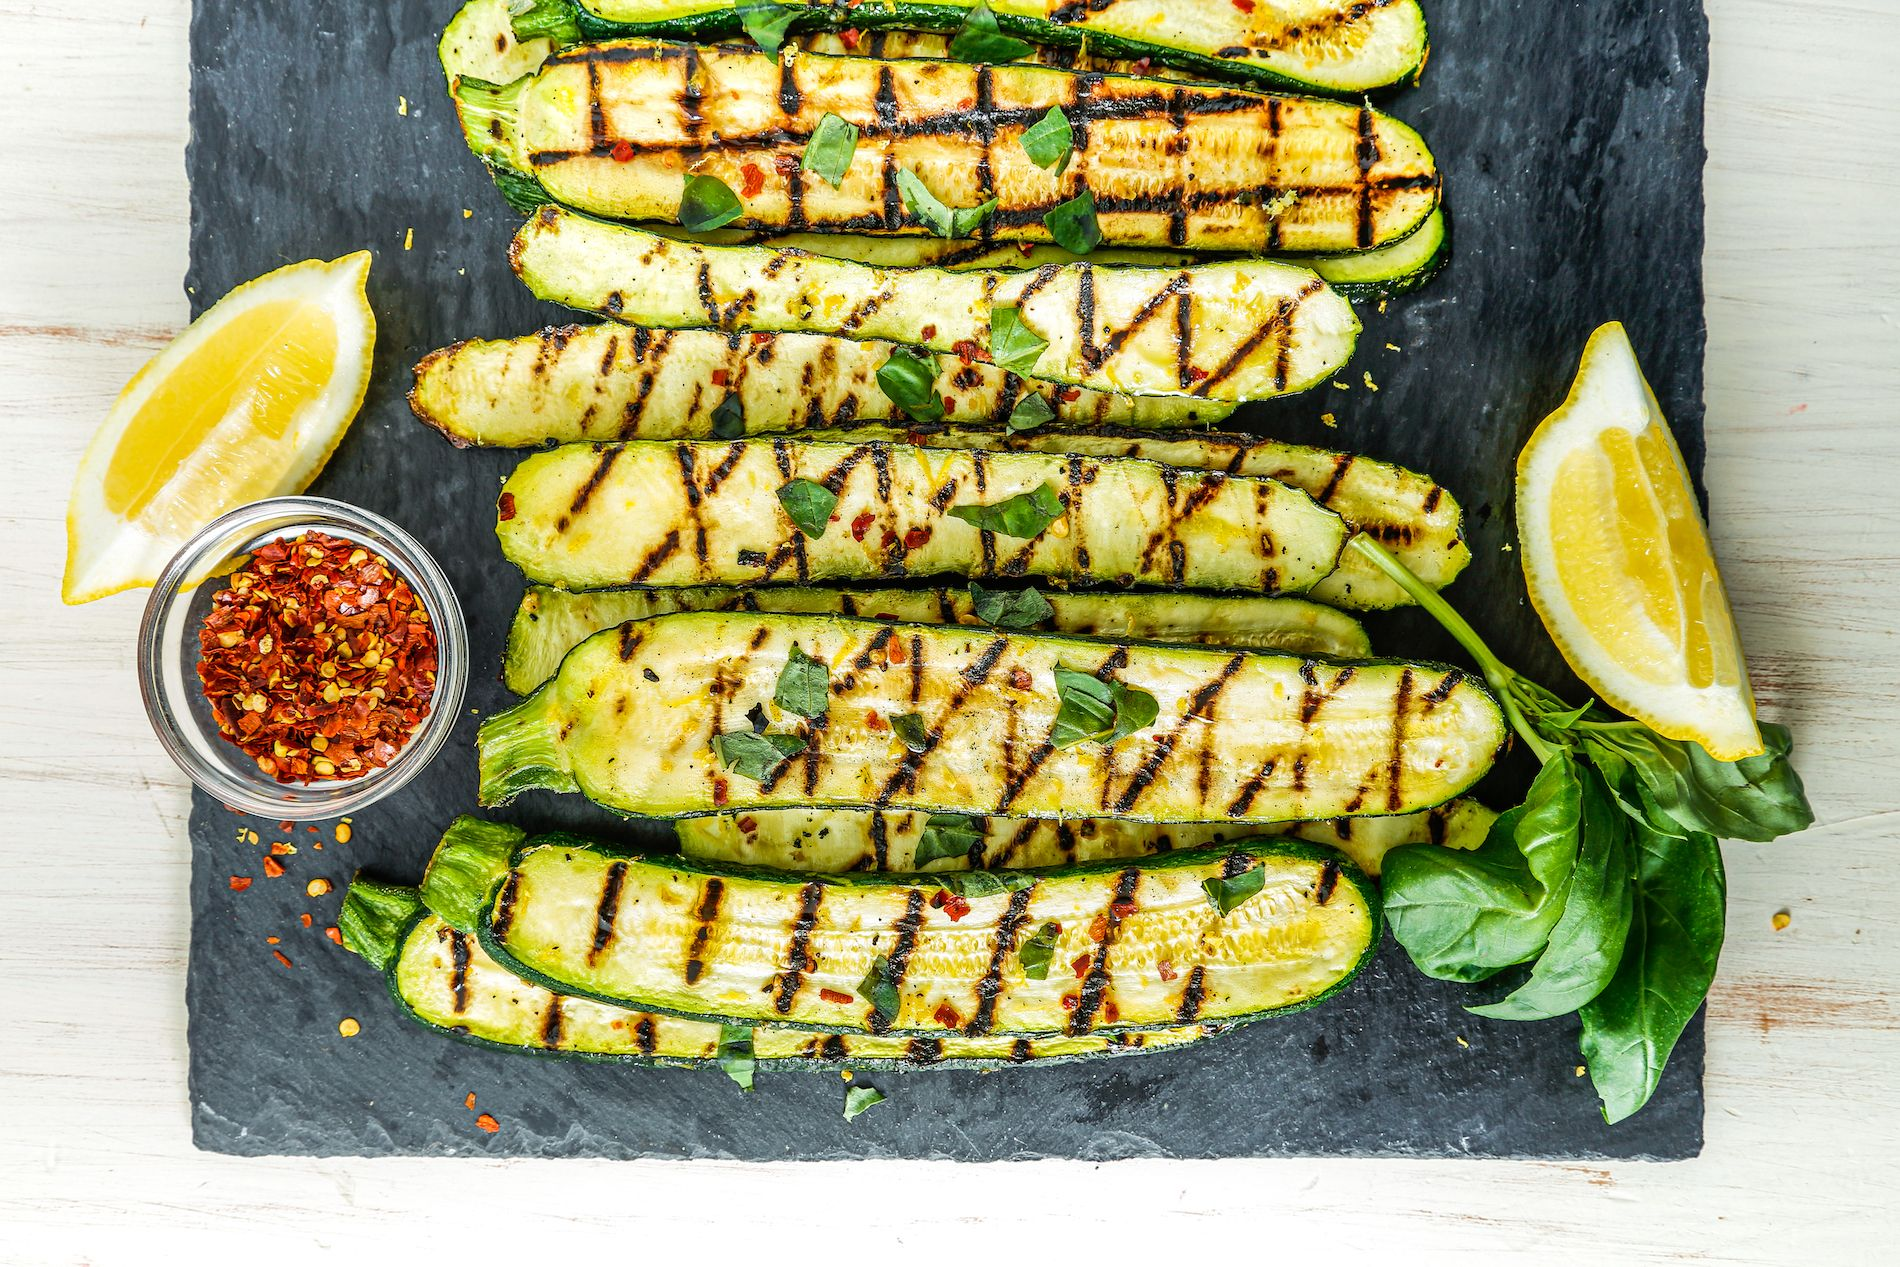 Best Grilled Zucchini Recipe How To Grill Zucchini Delish Com